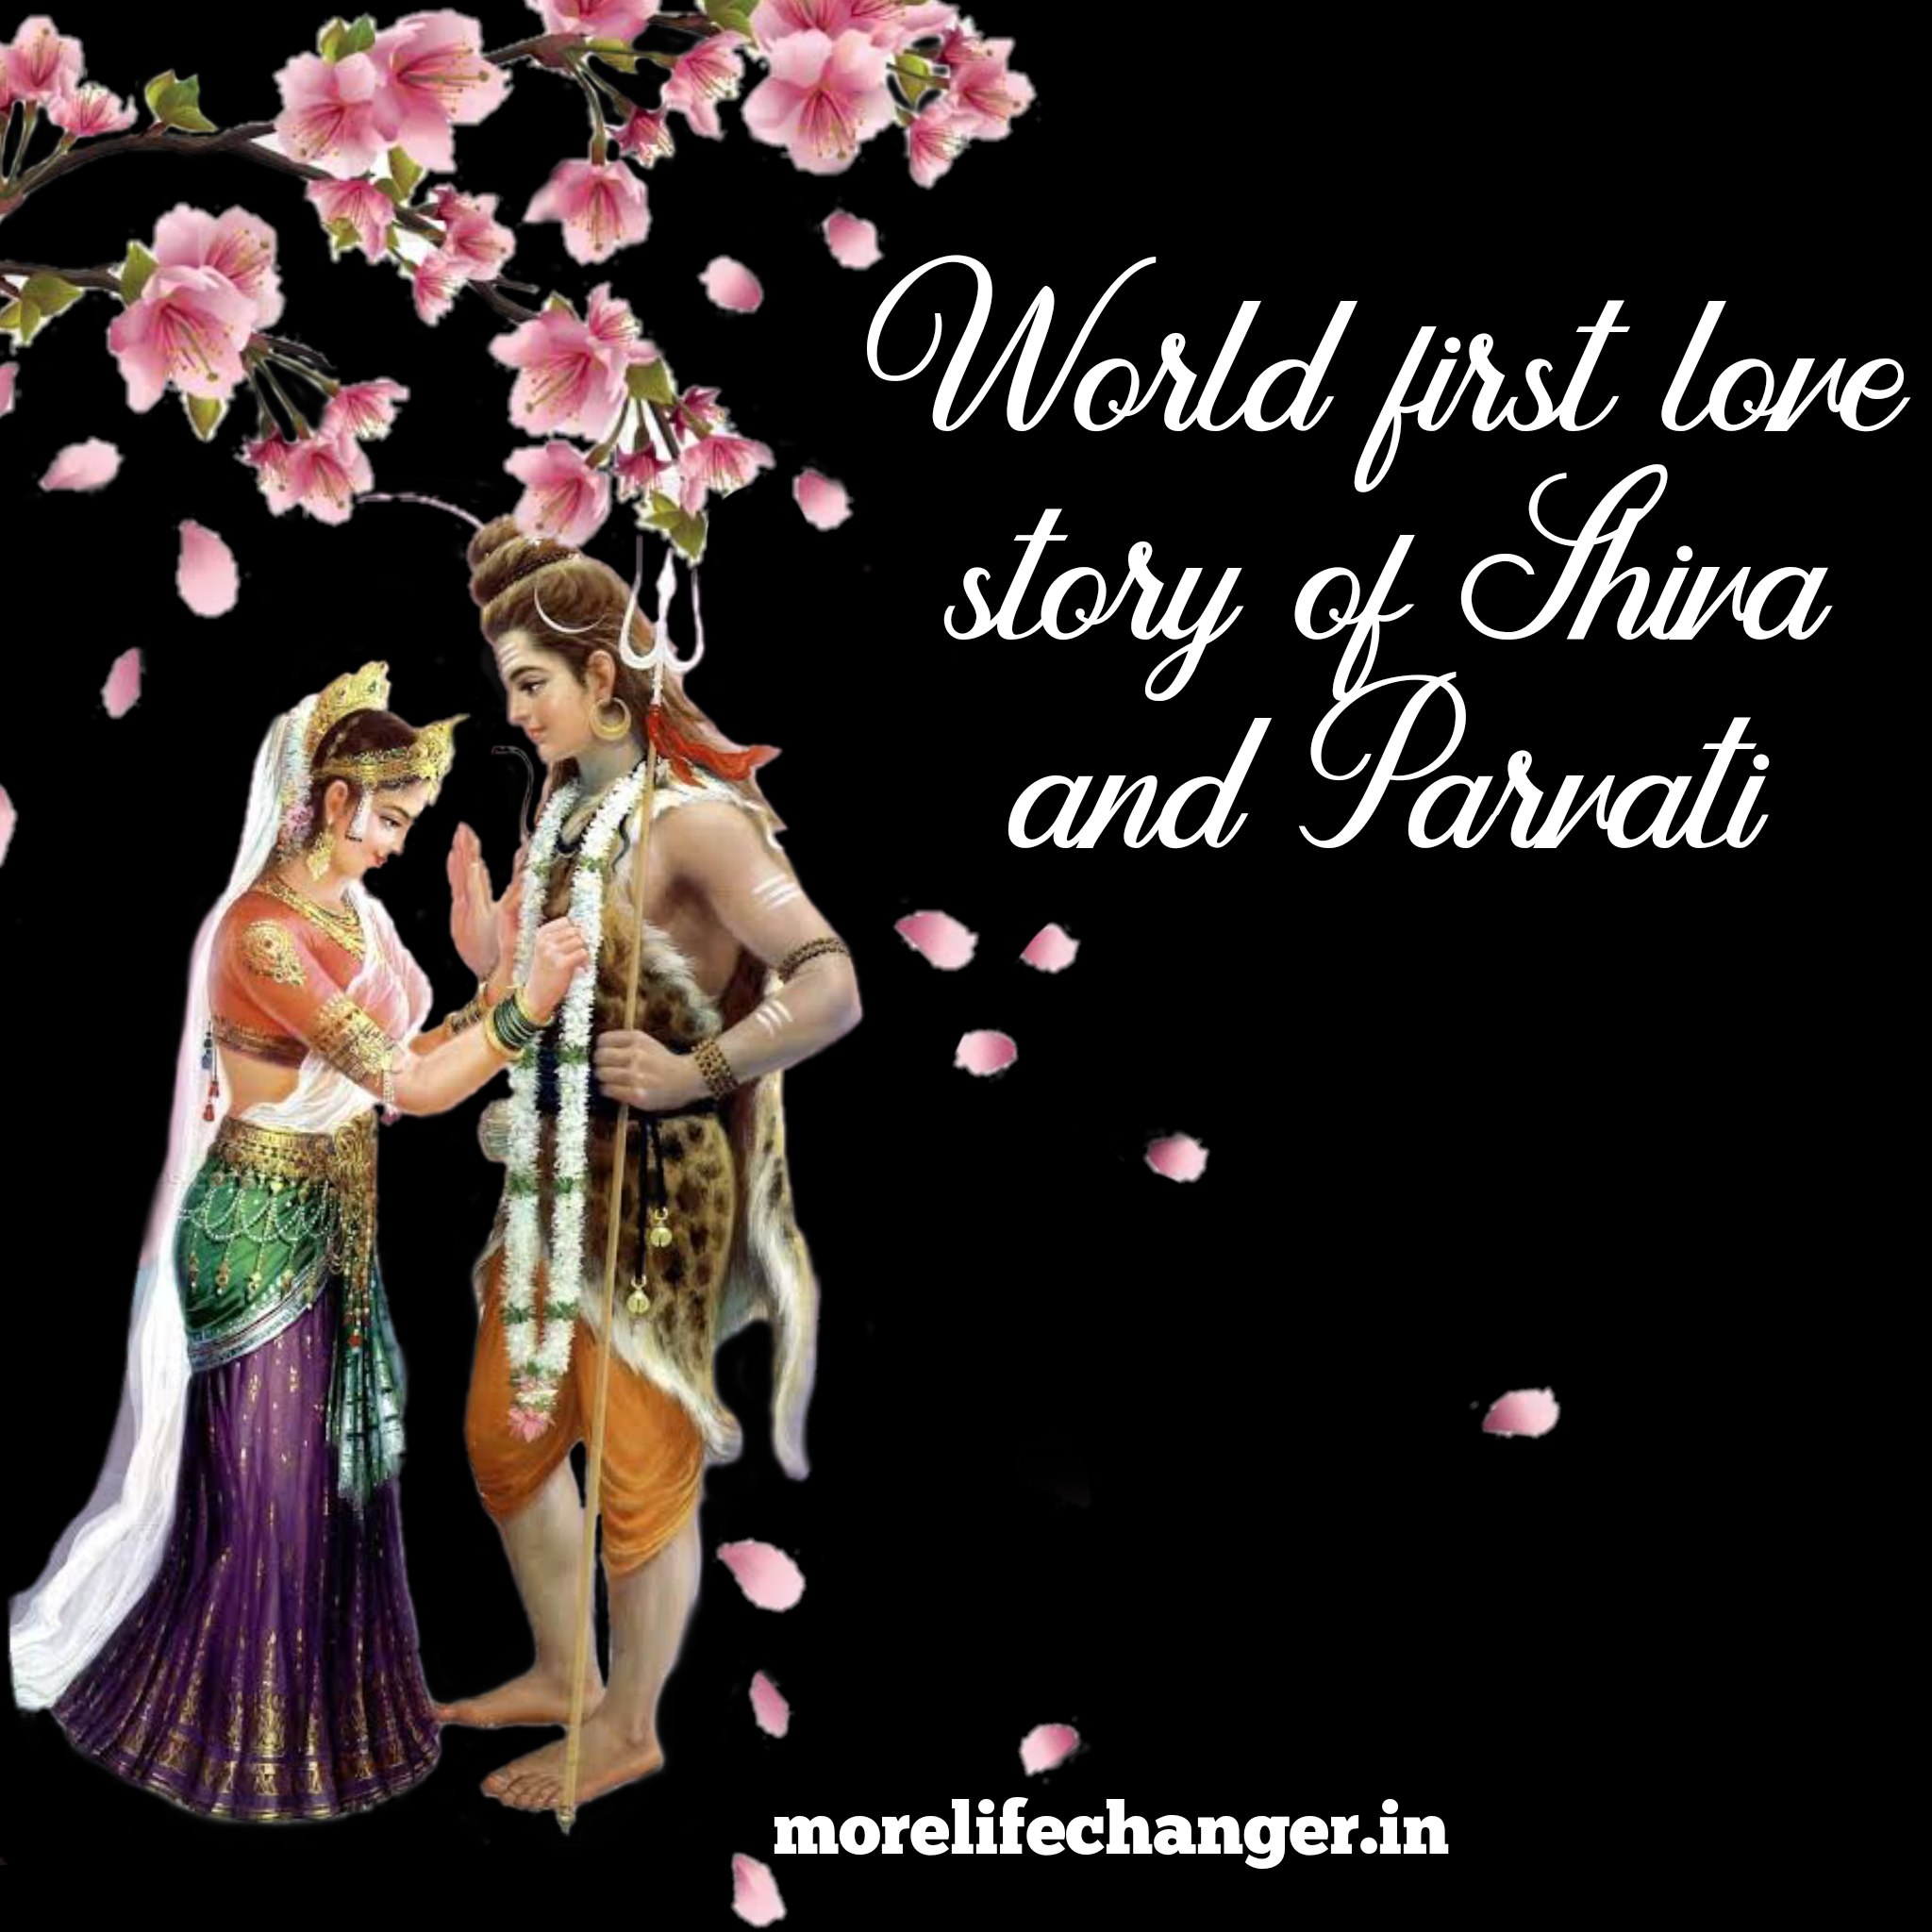 World first love story of Shiv and Parvati